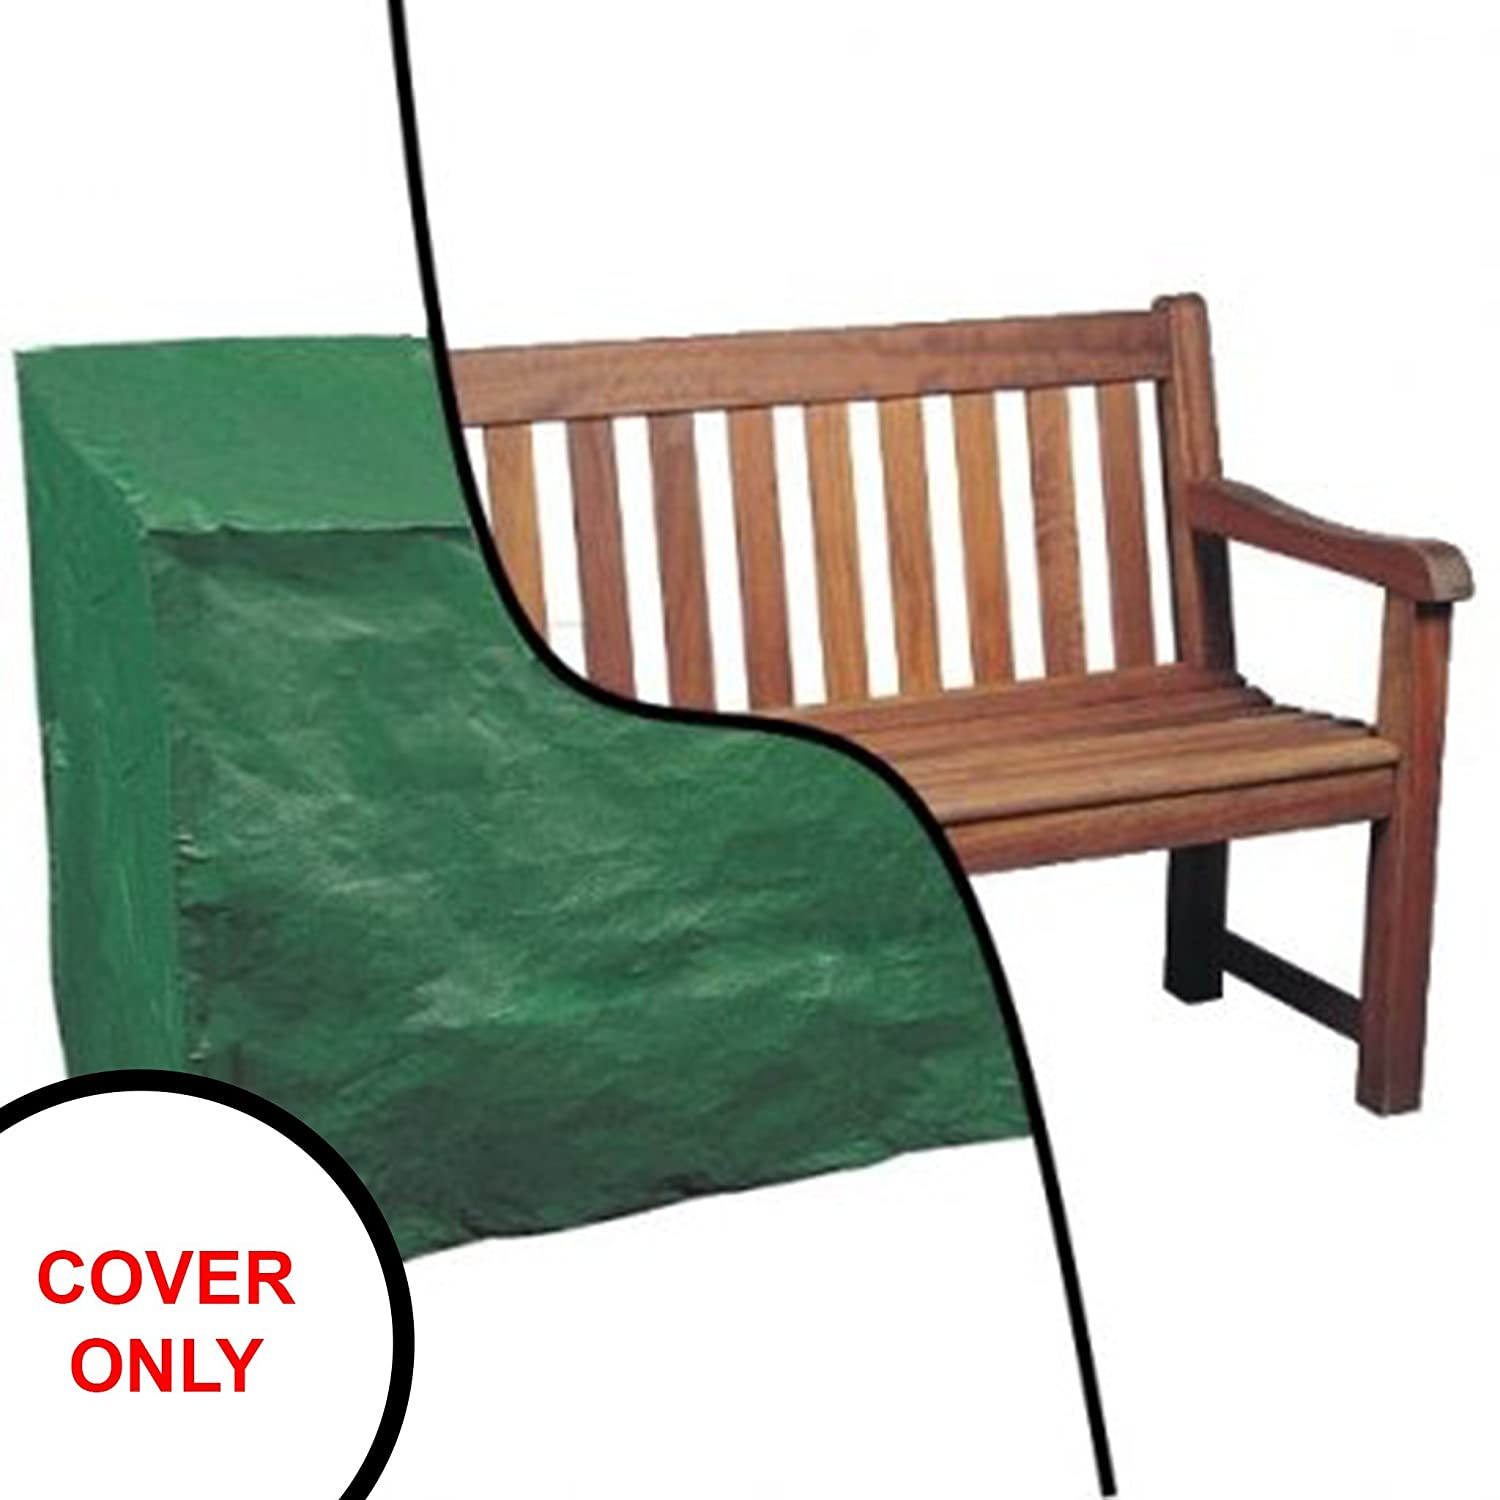 Oypla Waterproof 6ft 1.8m Garden Furniture 4 Seater Bench Seat Cover 3779OYP